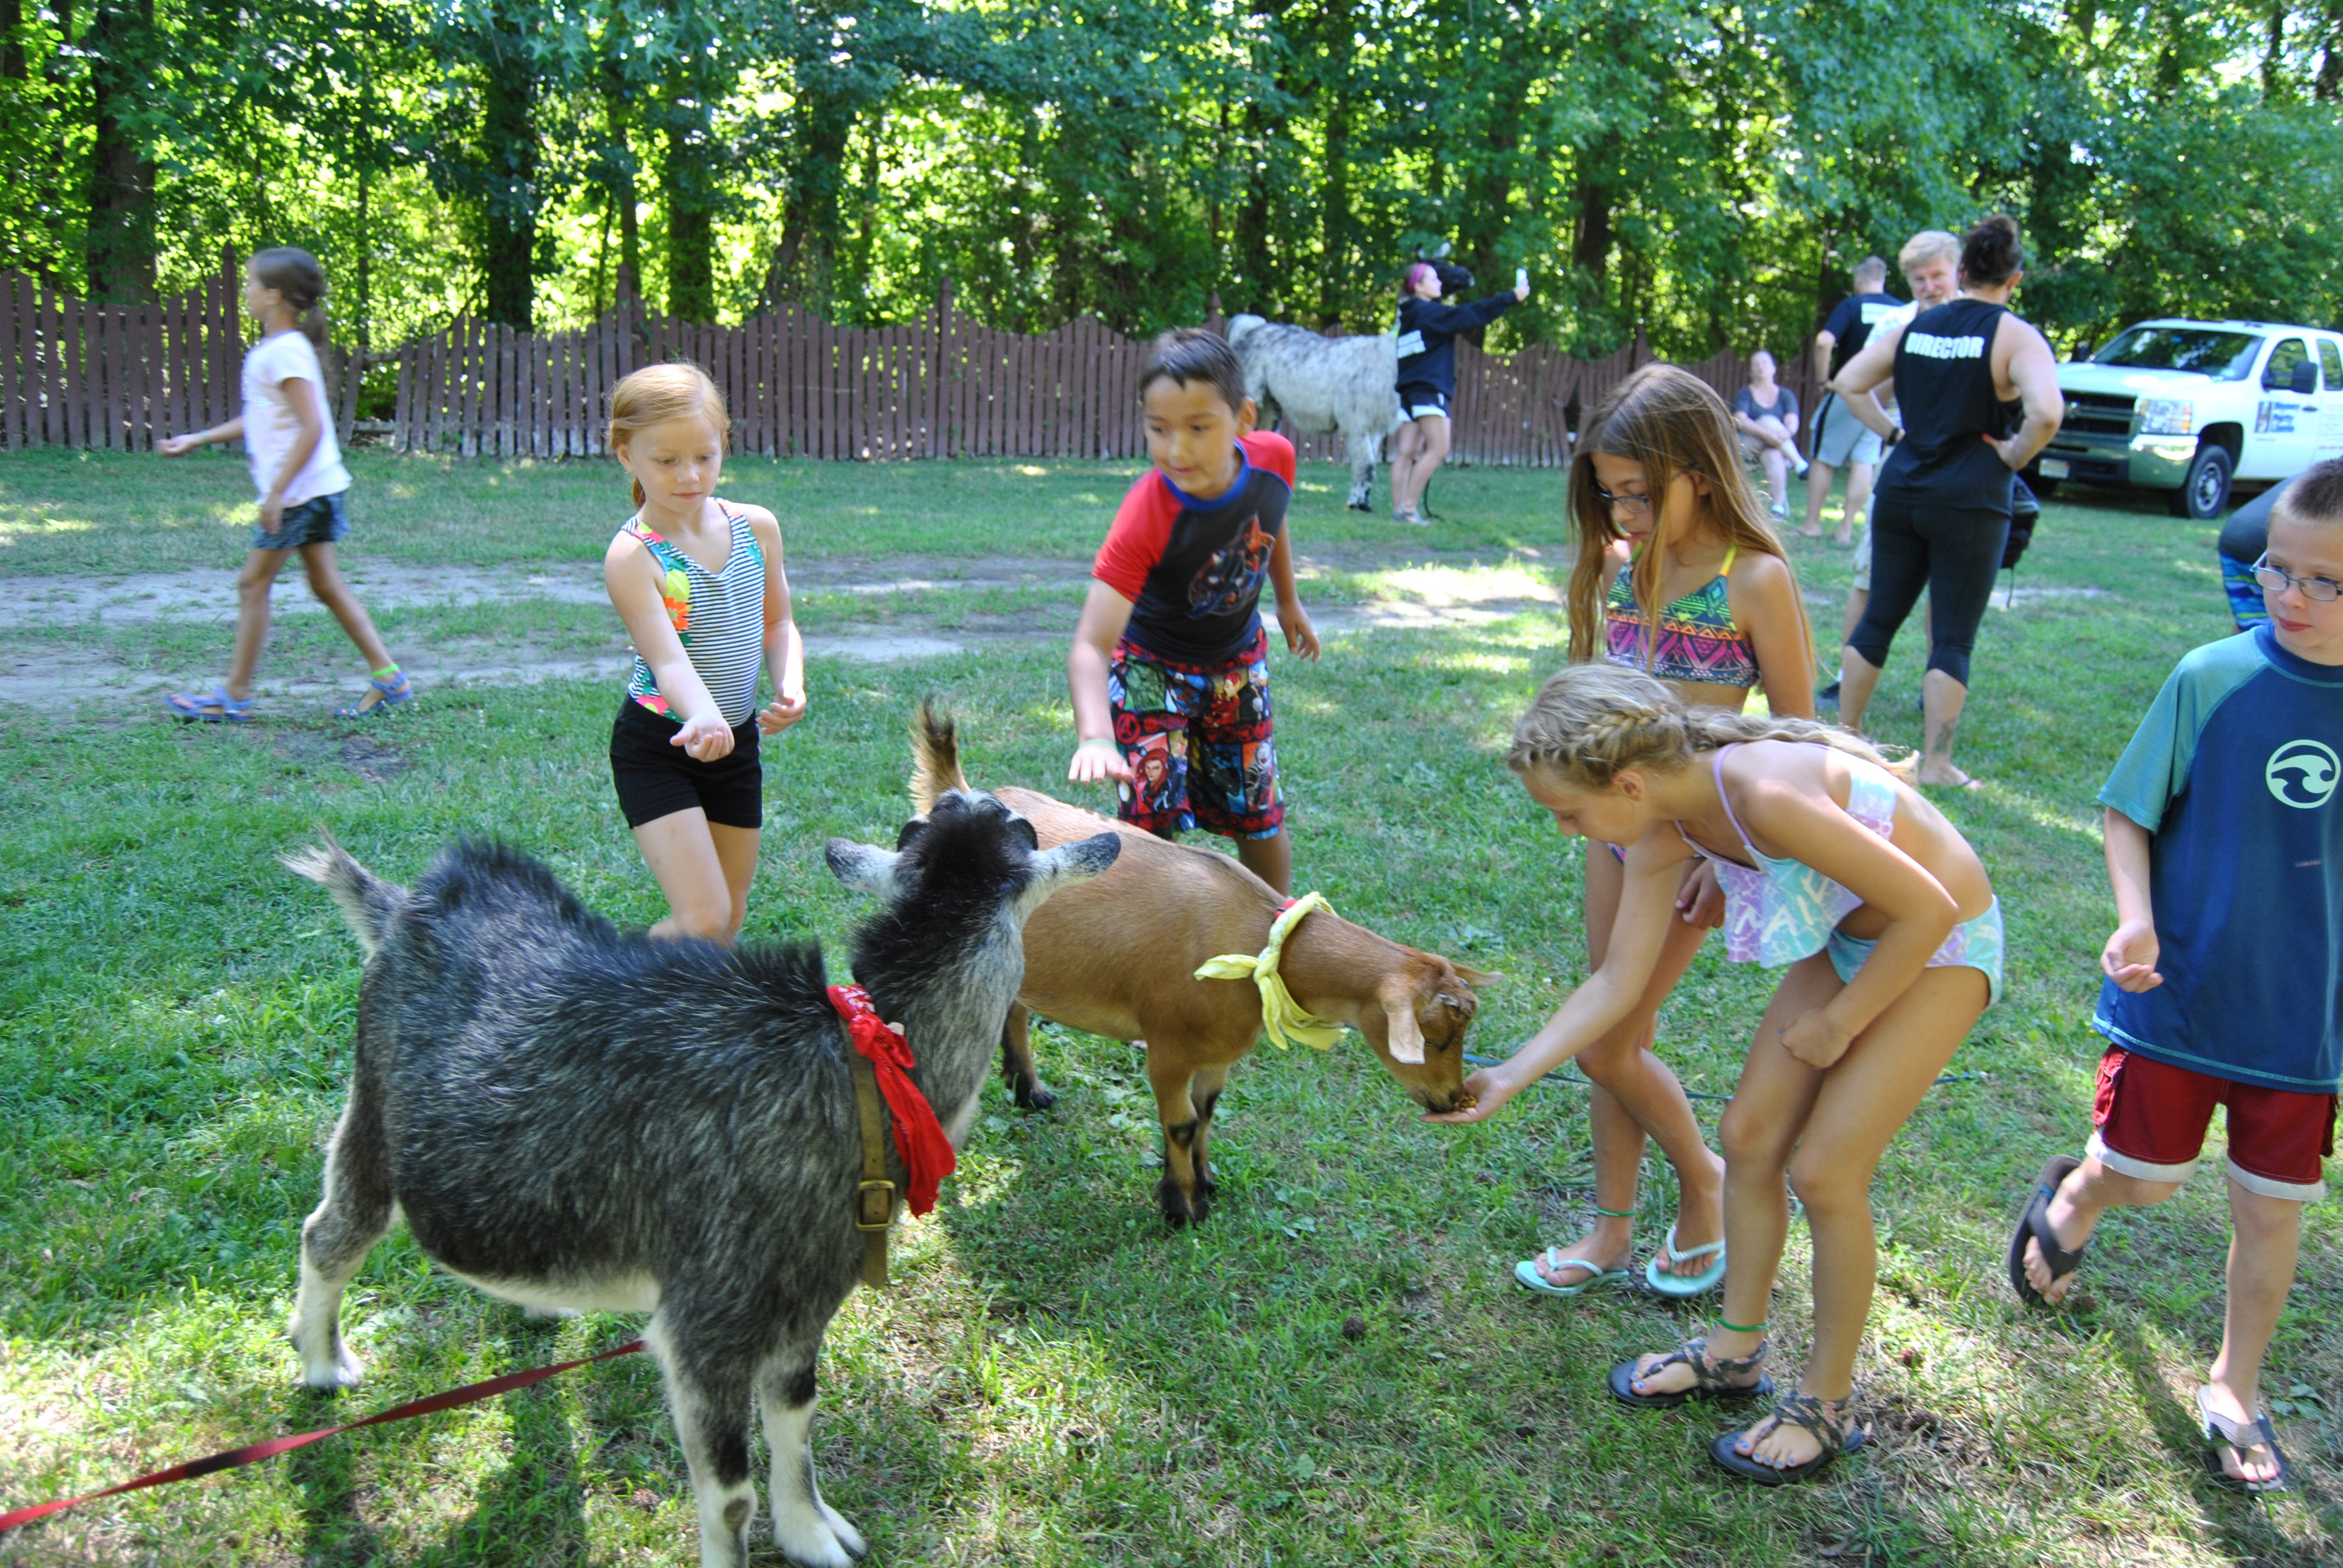 Chartwell's Happy Day Camp Marlton image 54